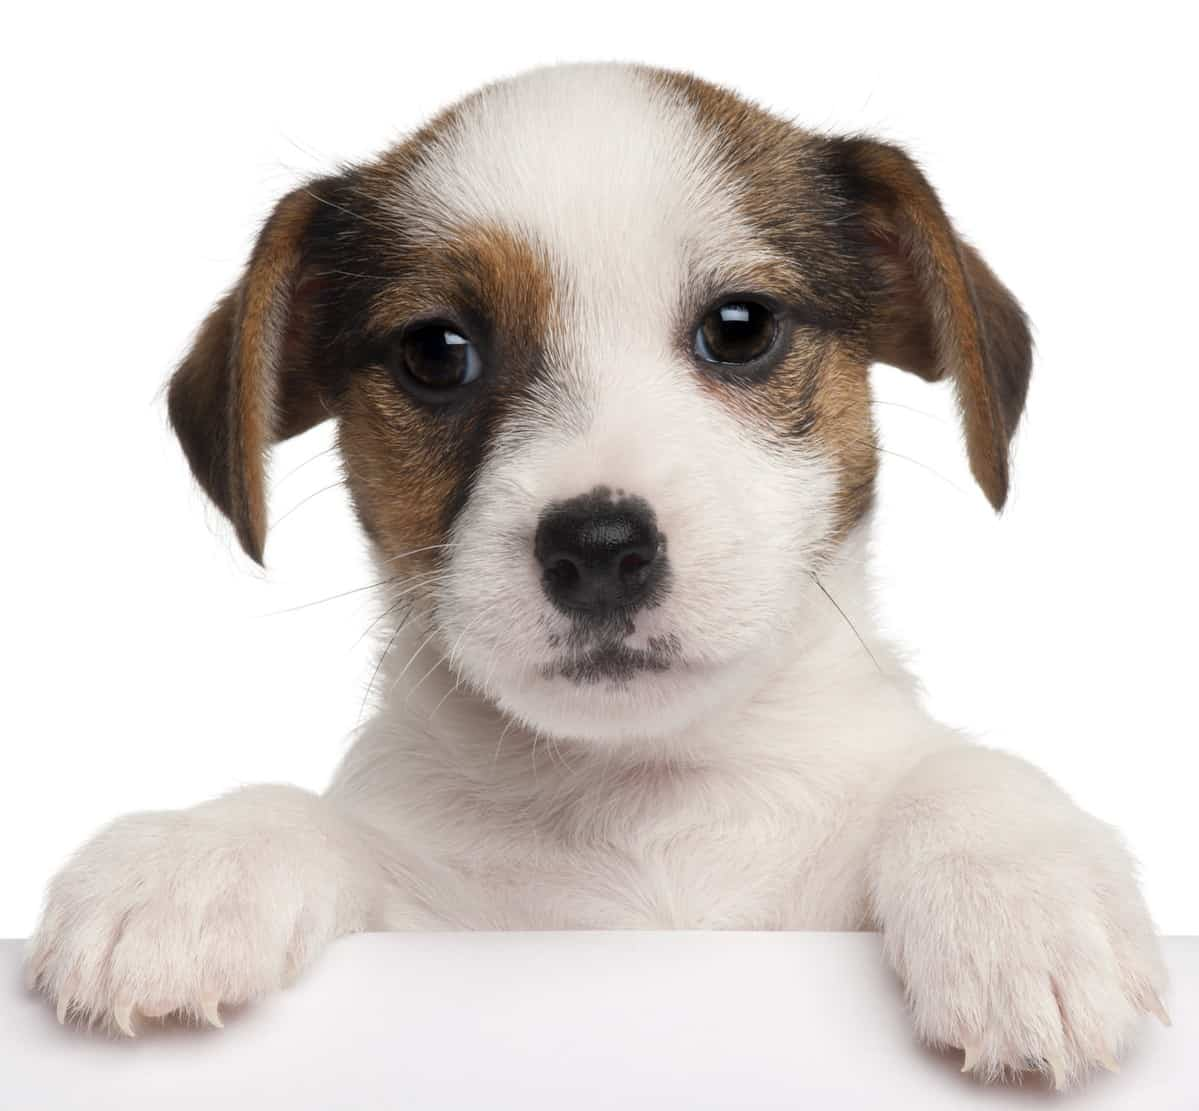 Jack Russell puppy looking over box